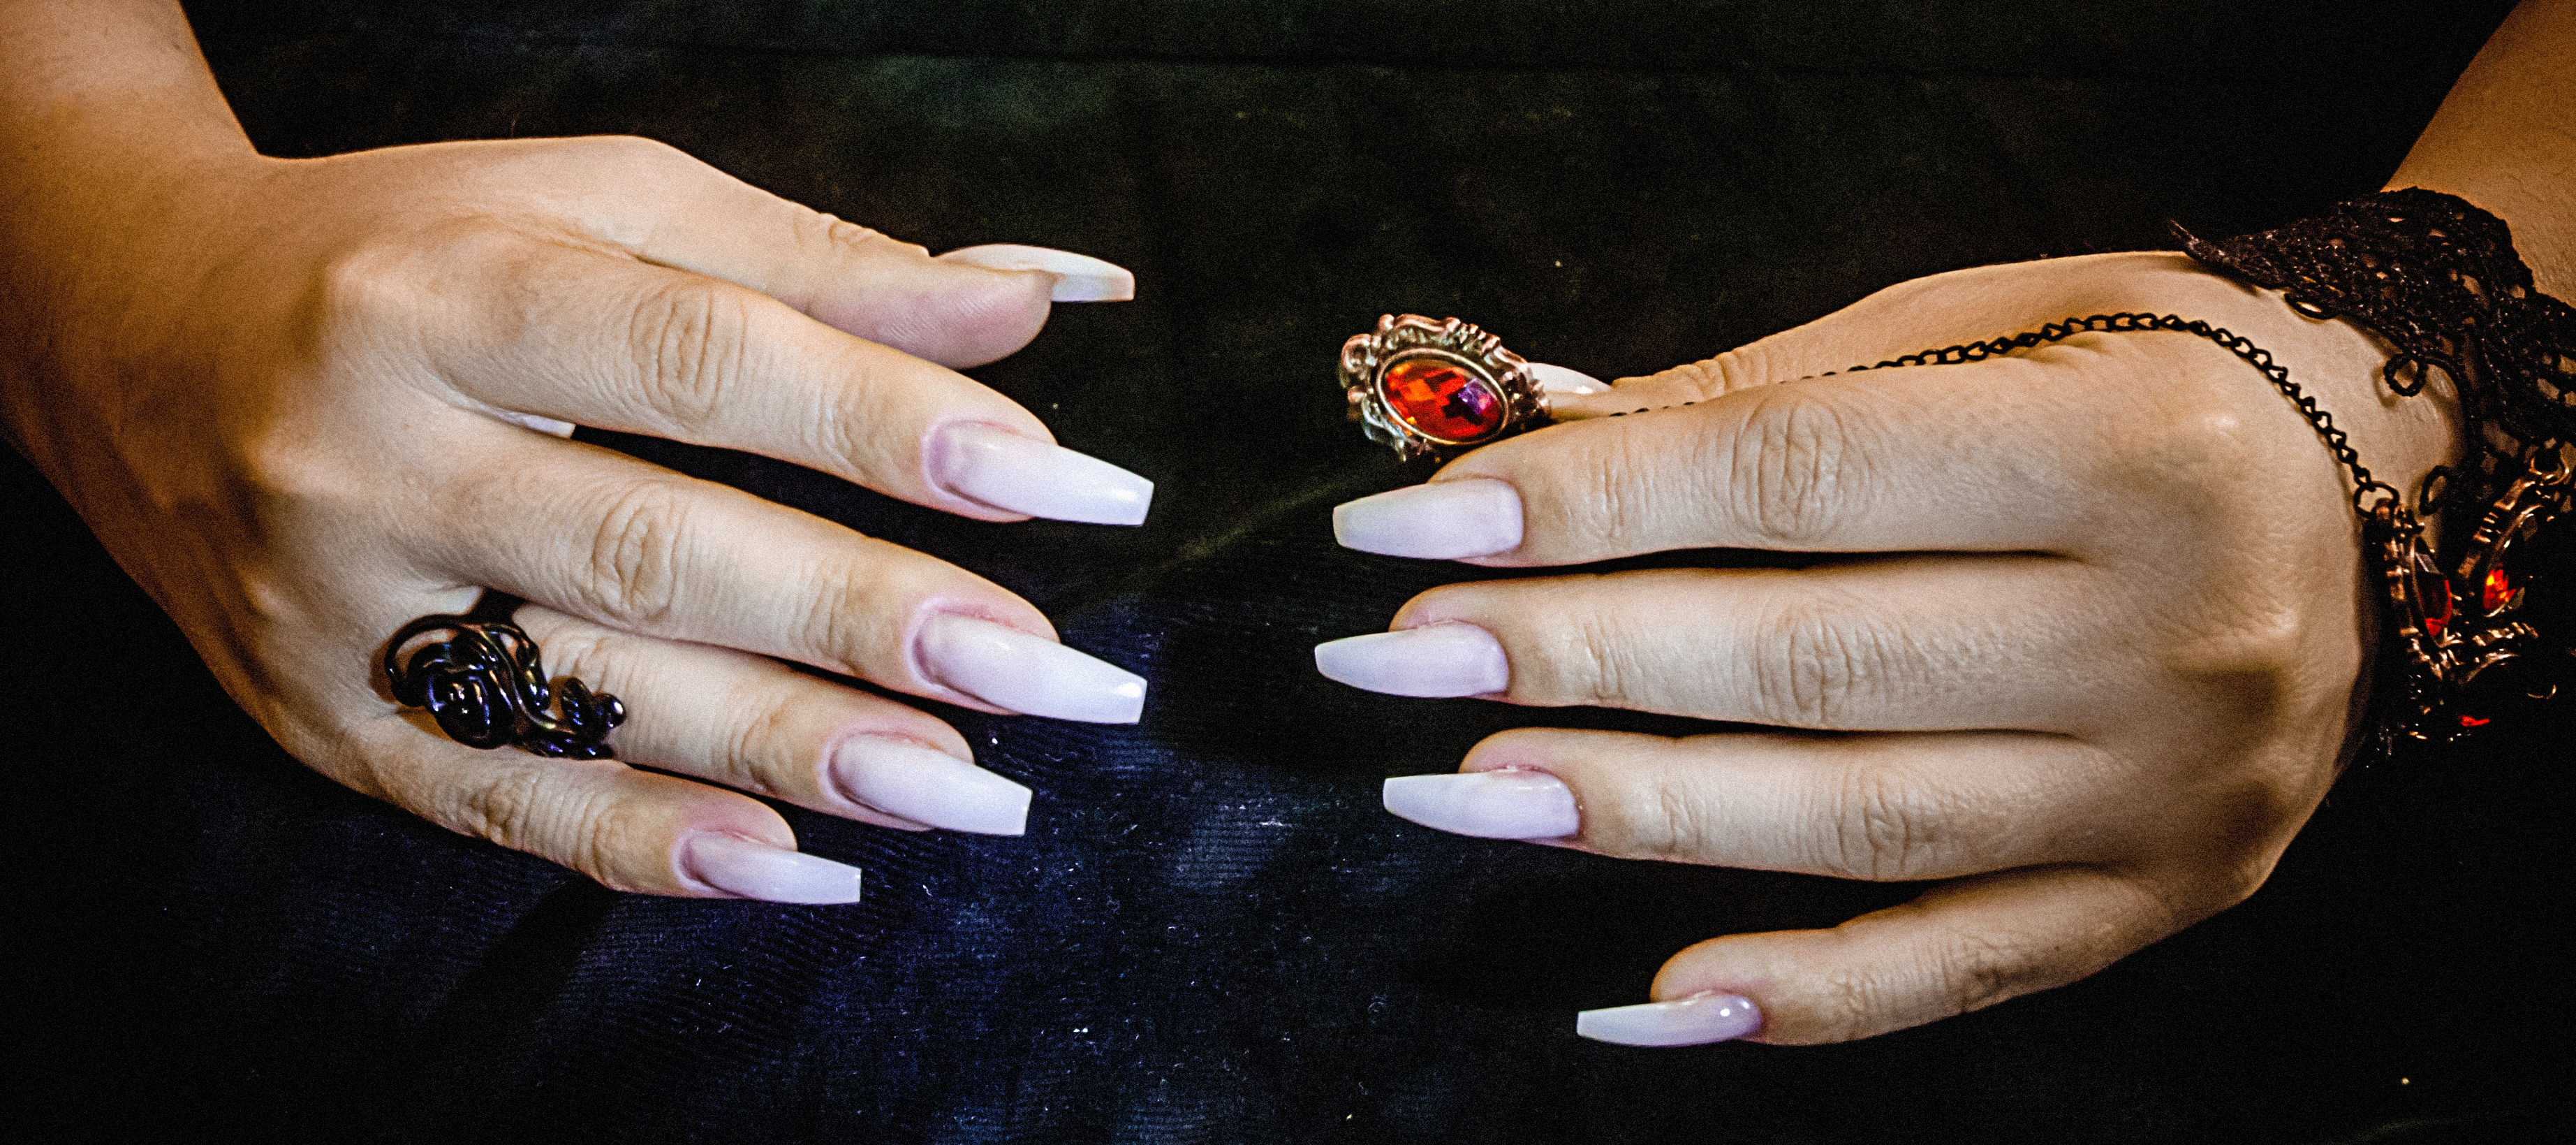 Loft Nail Spa - Nail salon in Chicago, IL 60654